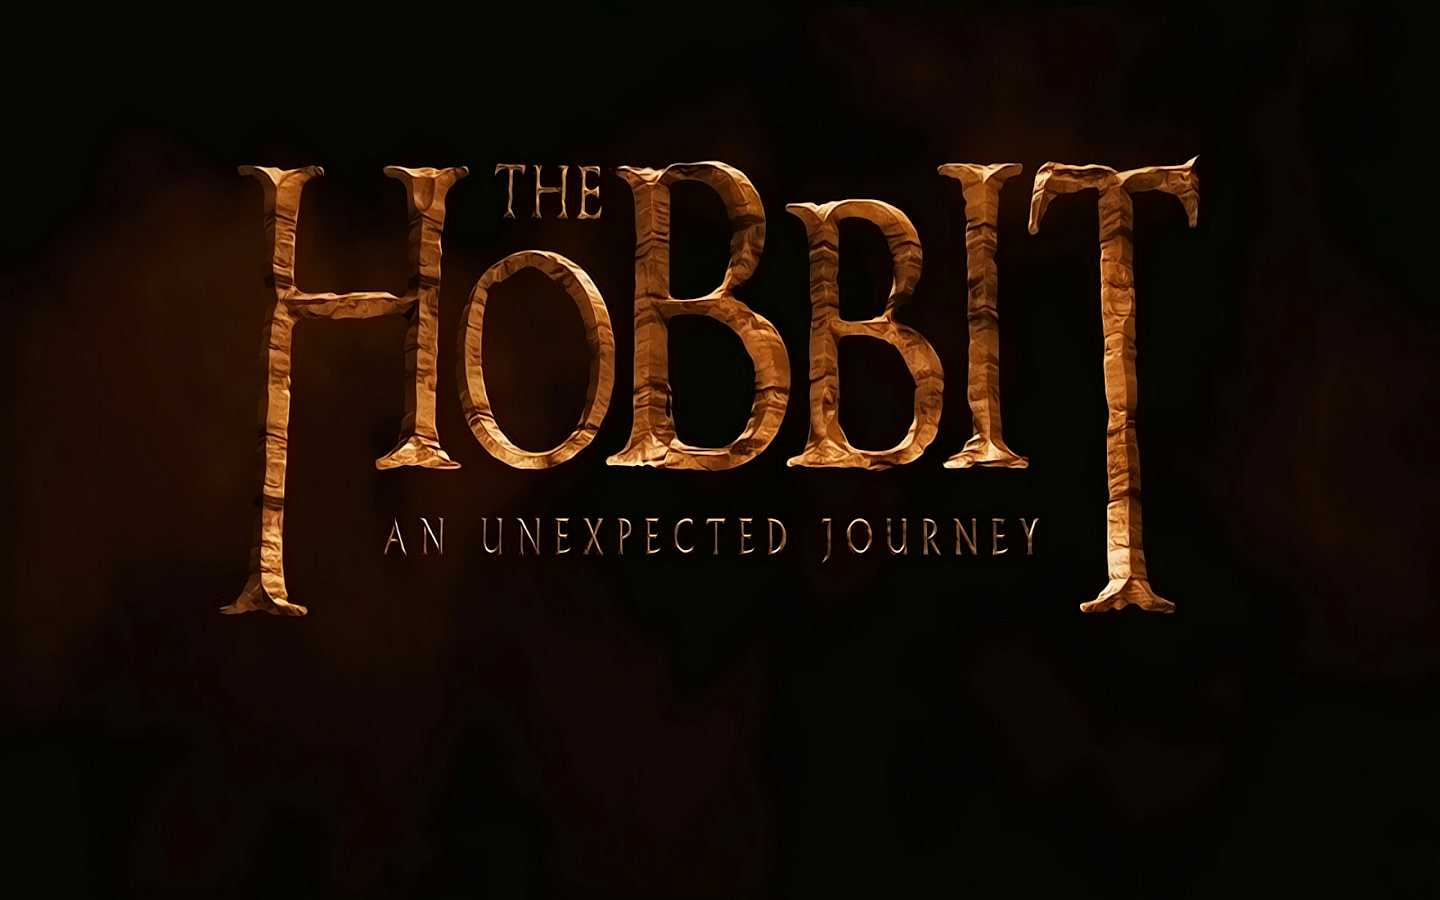 http://1.bp.blogspot.com/-YkBconpQ1uQ/UNaMR_S11NI/AAAAAAAAm5w/rCB_fsggsoo/s1600/1440x900+Wallpaper+Desktop+-+El+hobbit+-The-Hobbit-An-Unexpected-Journey-Wallpapers-1920x1080-26.jpg